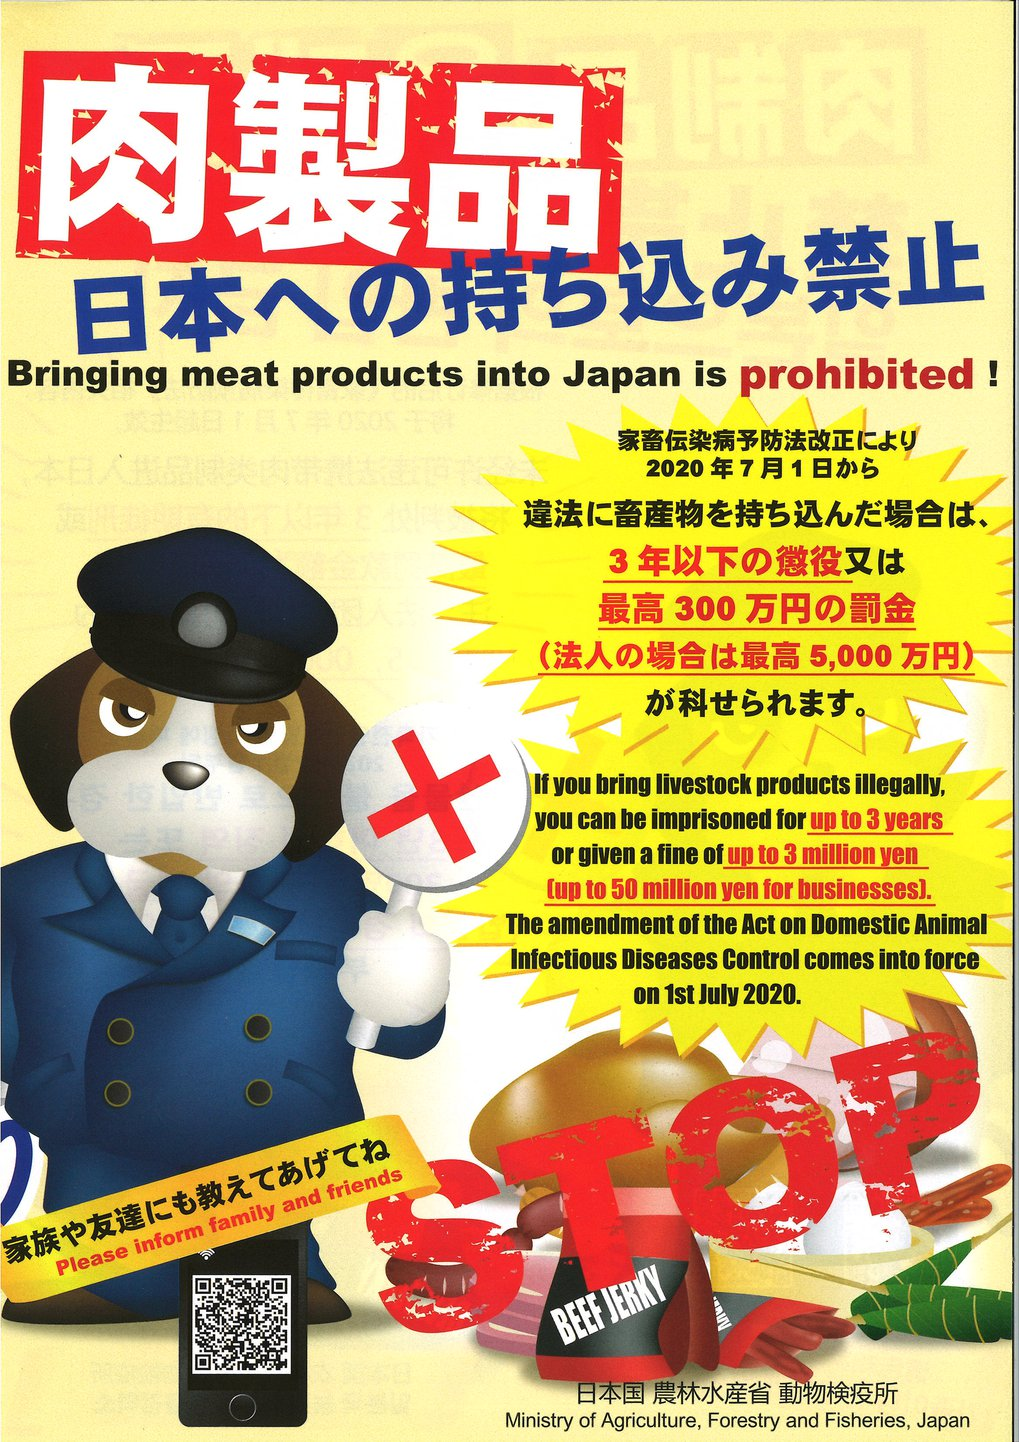 2020.09meat_products_prohibited_JP.EN.jpg